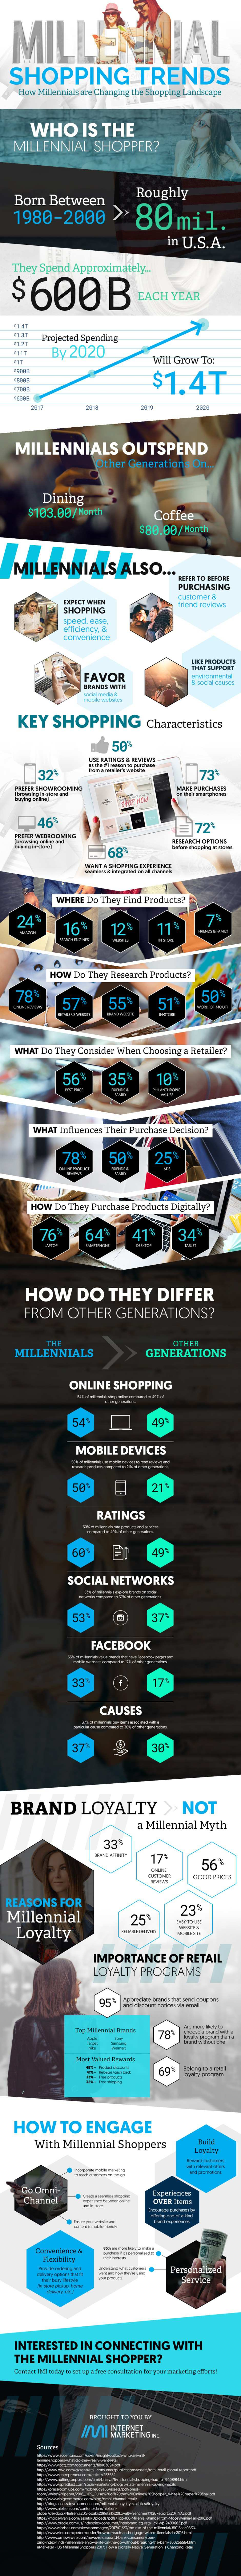 millenial-shopping-trends